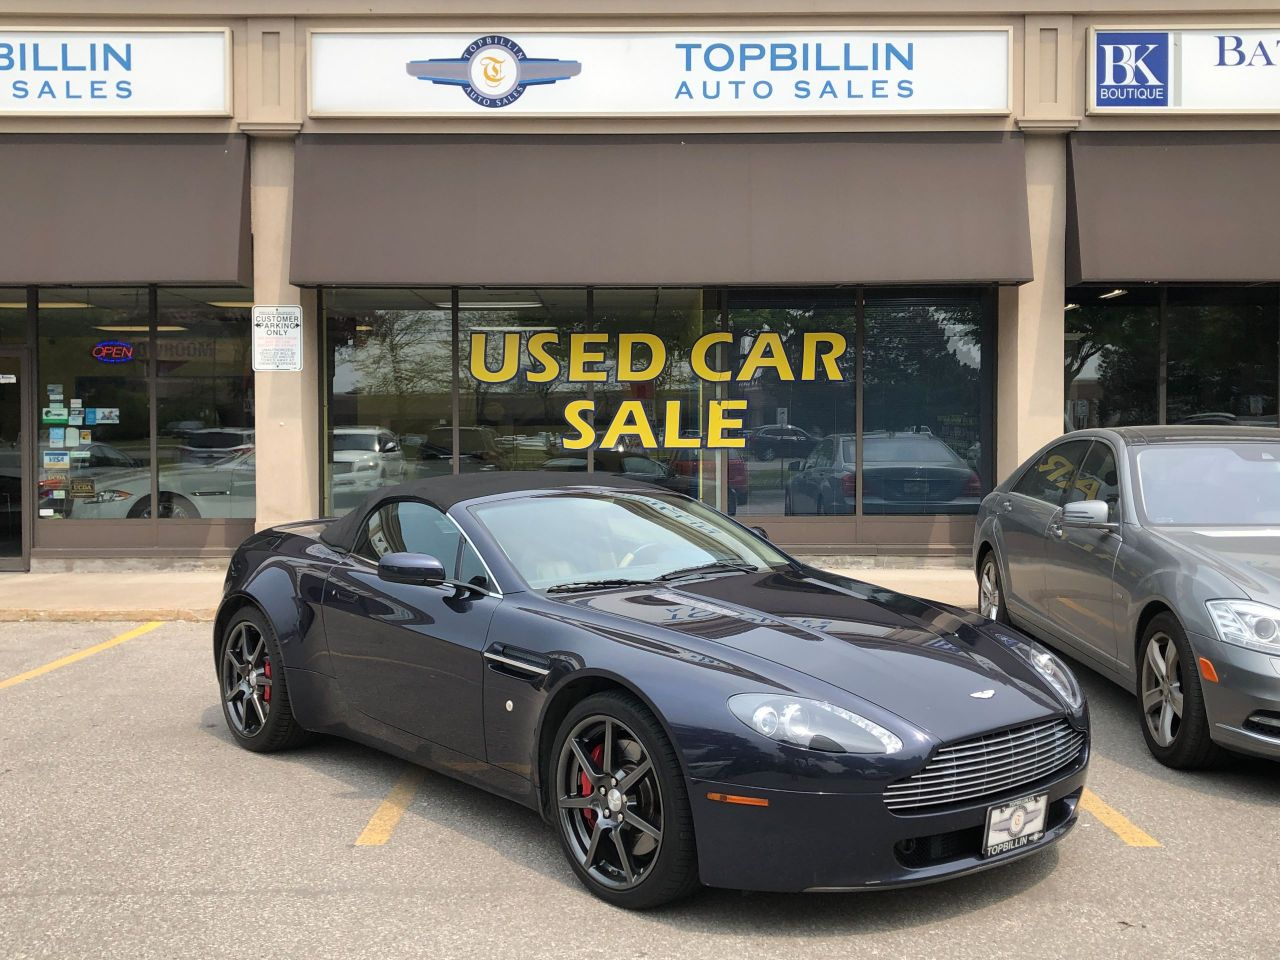 2007 Aston Martin Vantage Convertible, Only 31K kms